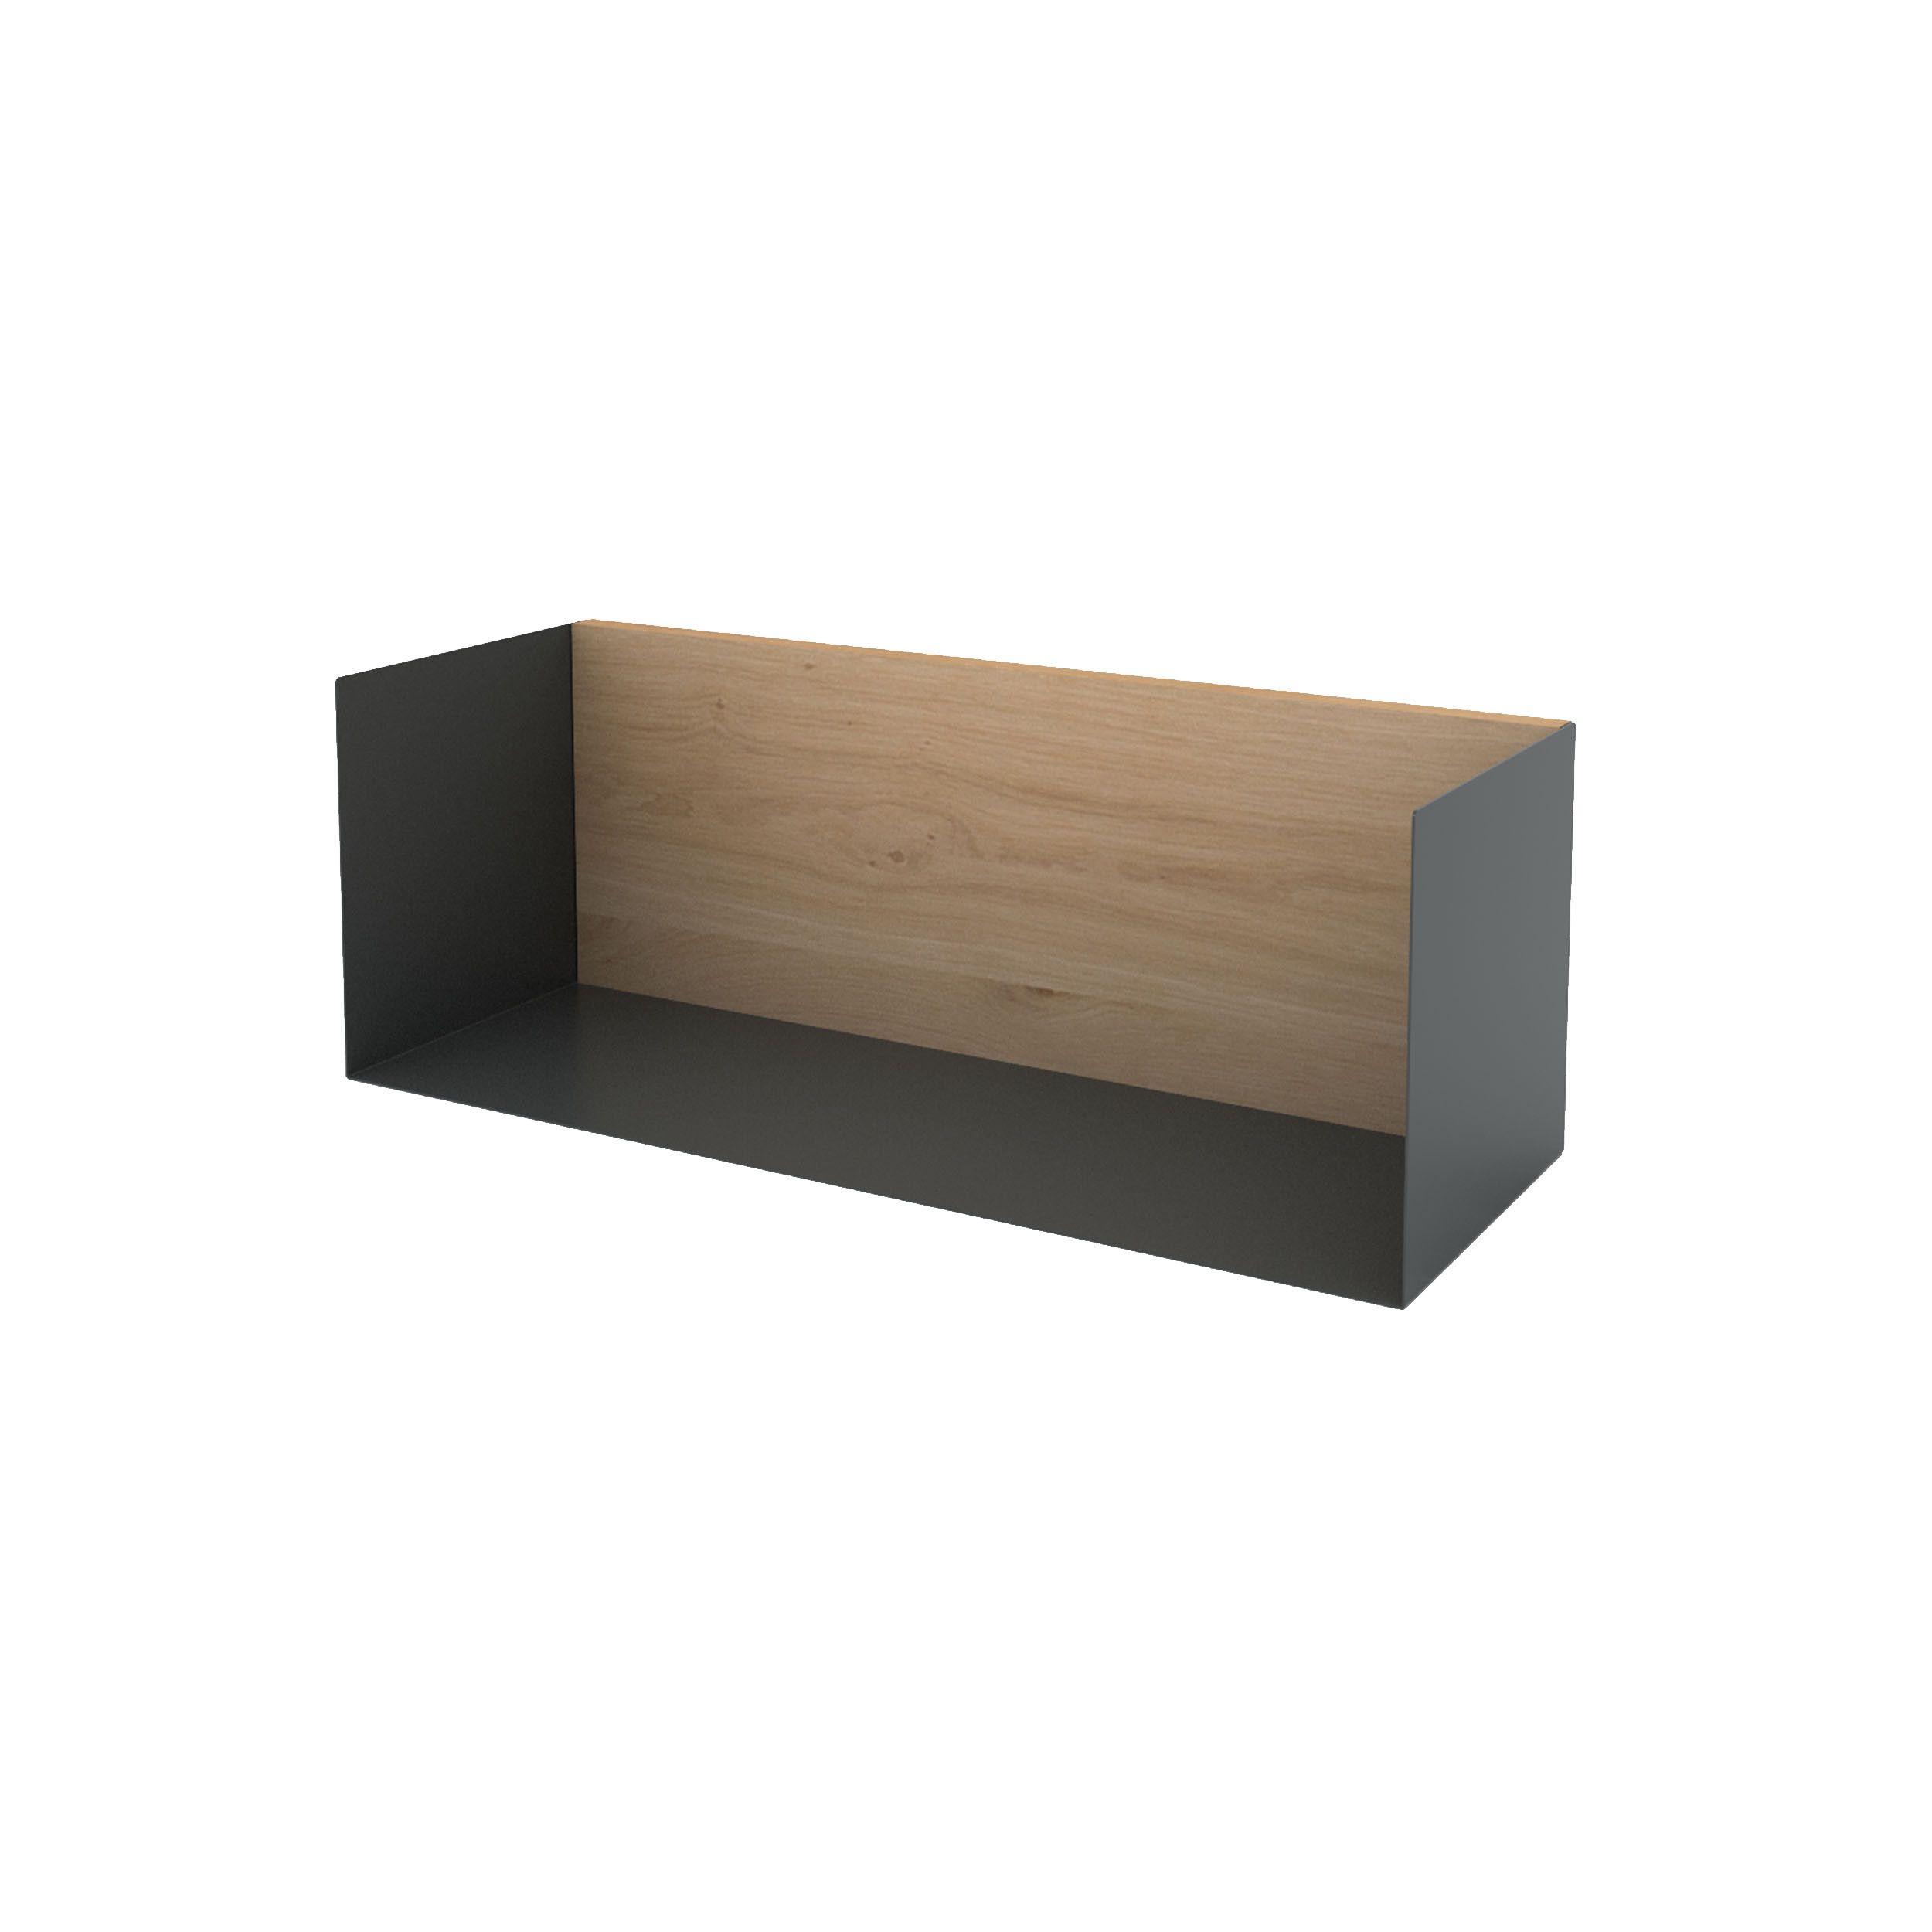 Regal Shelfy U Shelf Regal A046488 006 Online Kaufen Bei Woonio